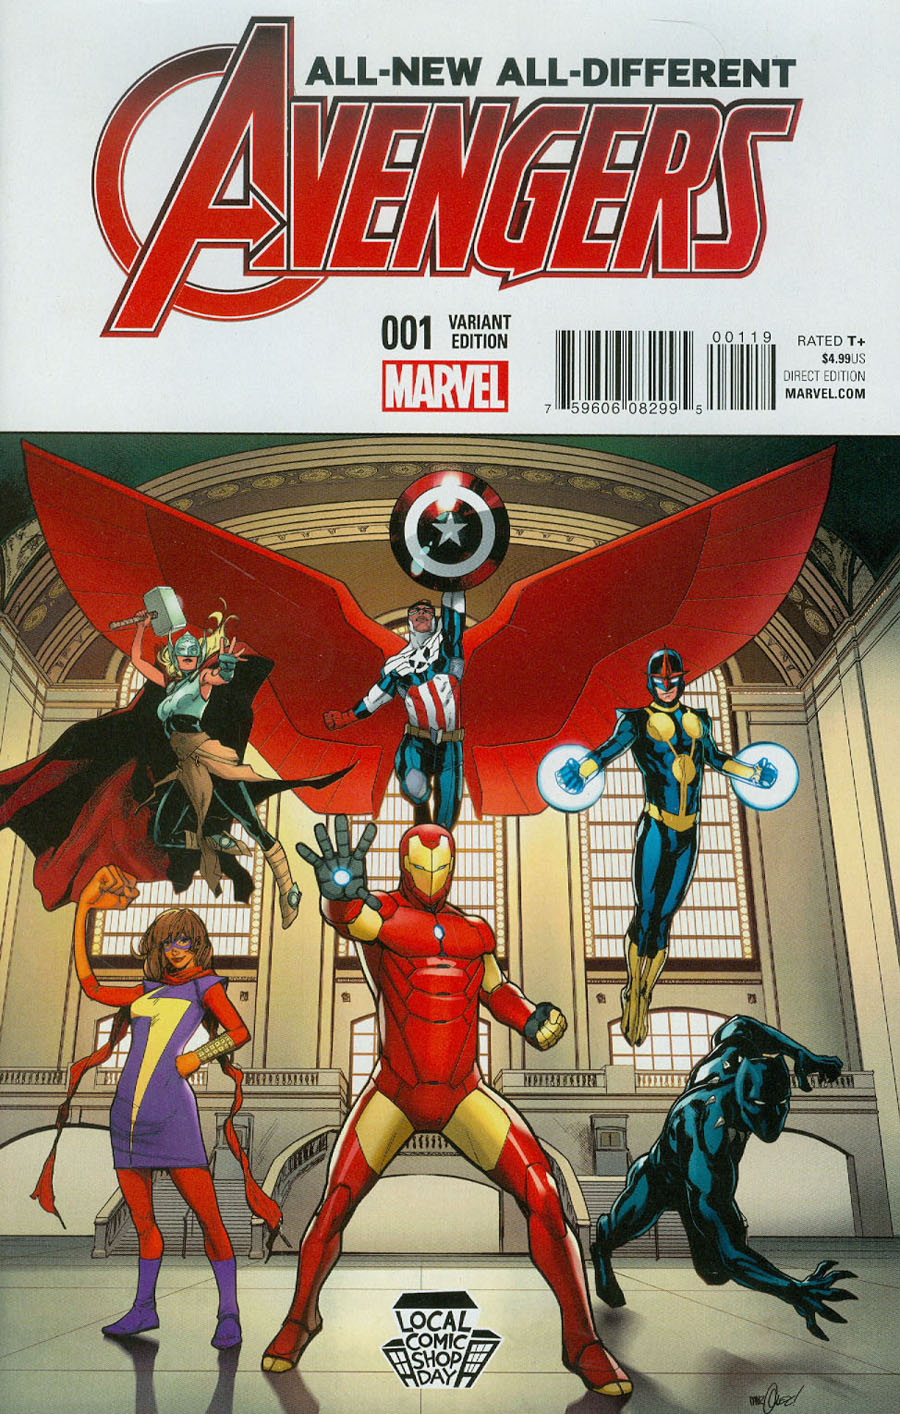 LCSD 2015 All-New All-Different Avengers #1